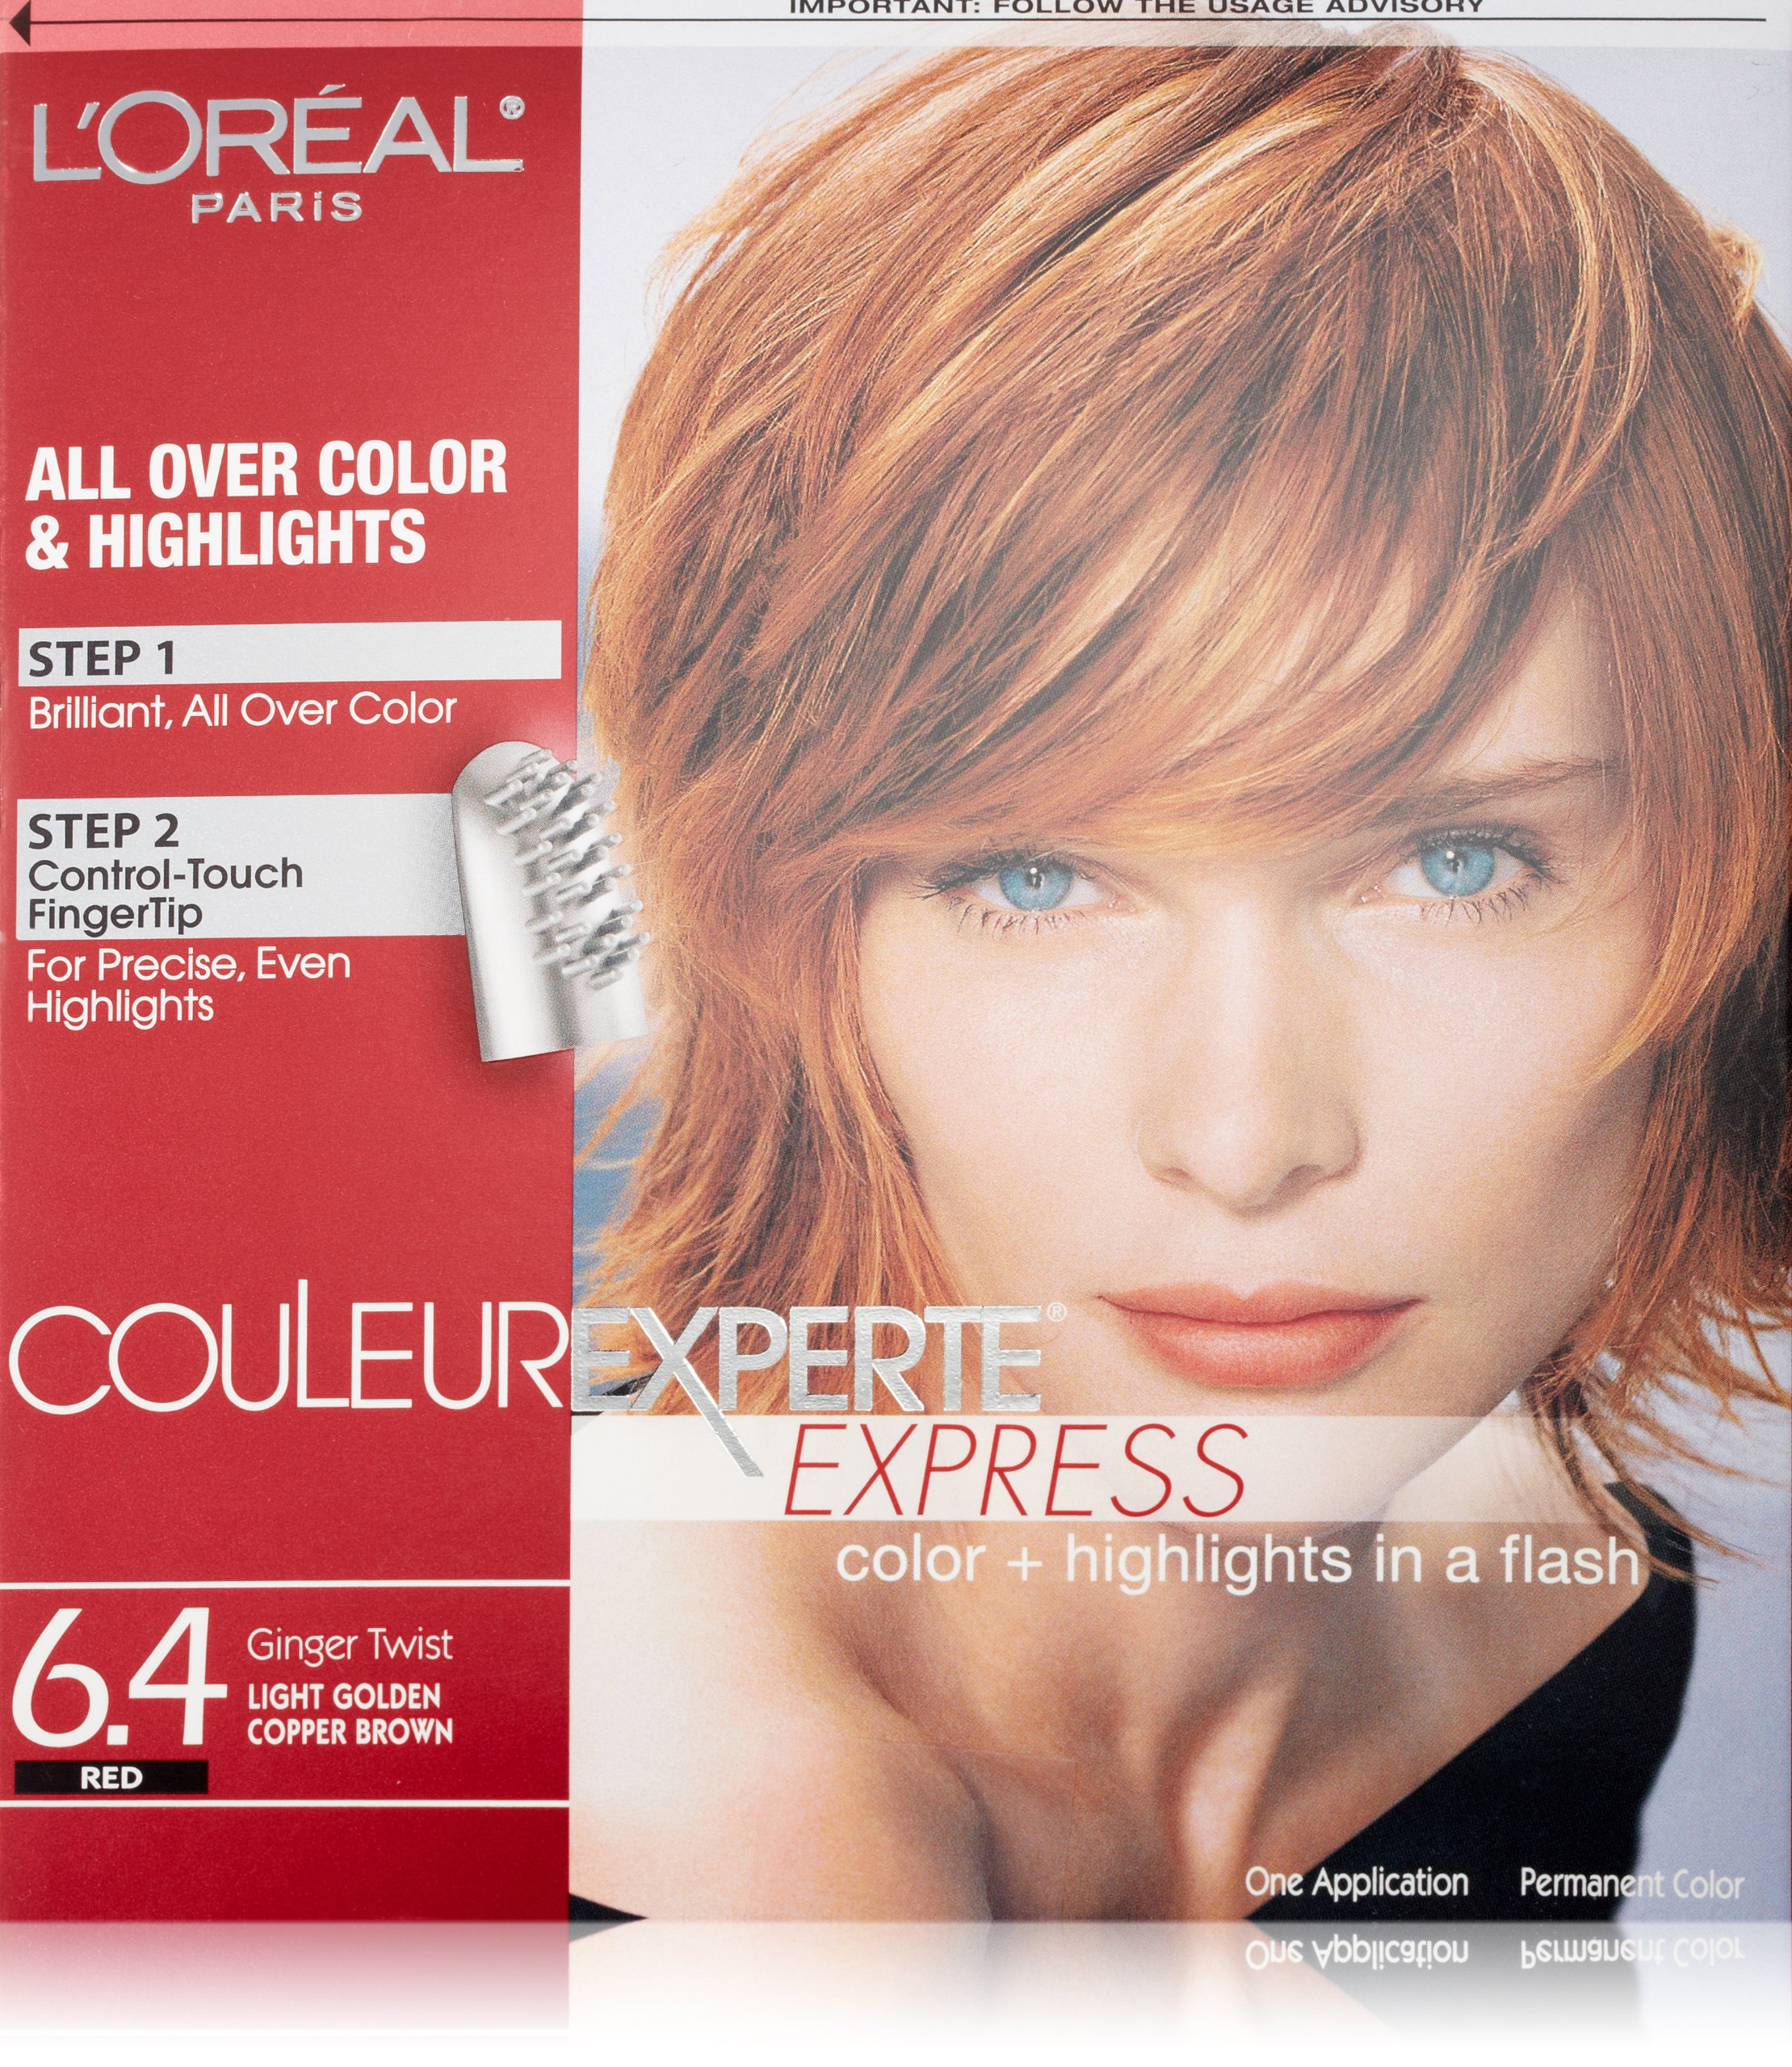 L'Oréal Paris Couleur Experte Hair Color + Hair Highlights, Light Golden Copper - Brown Ginger Twist